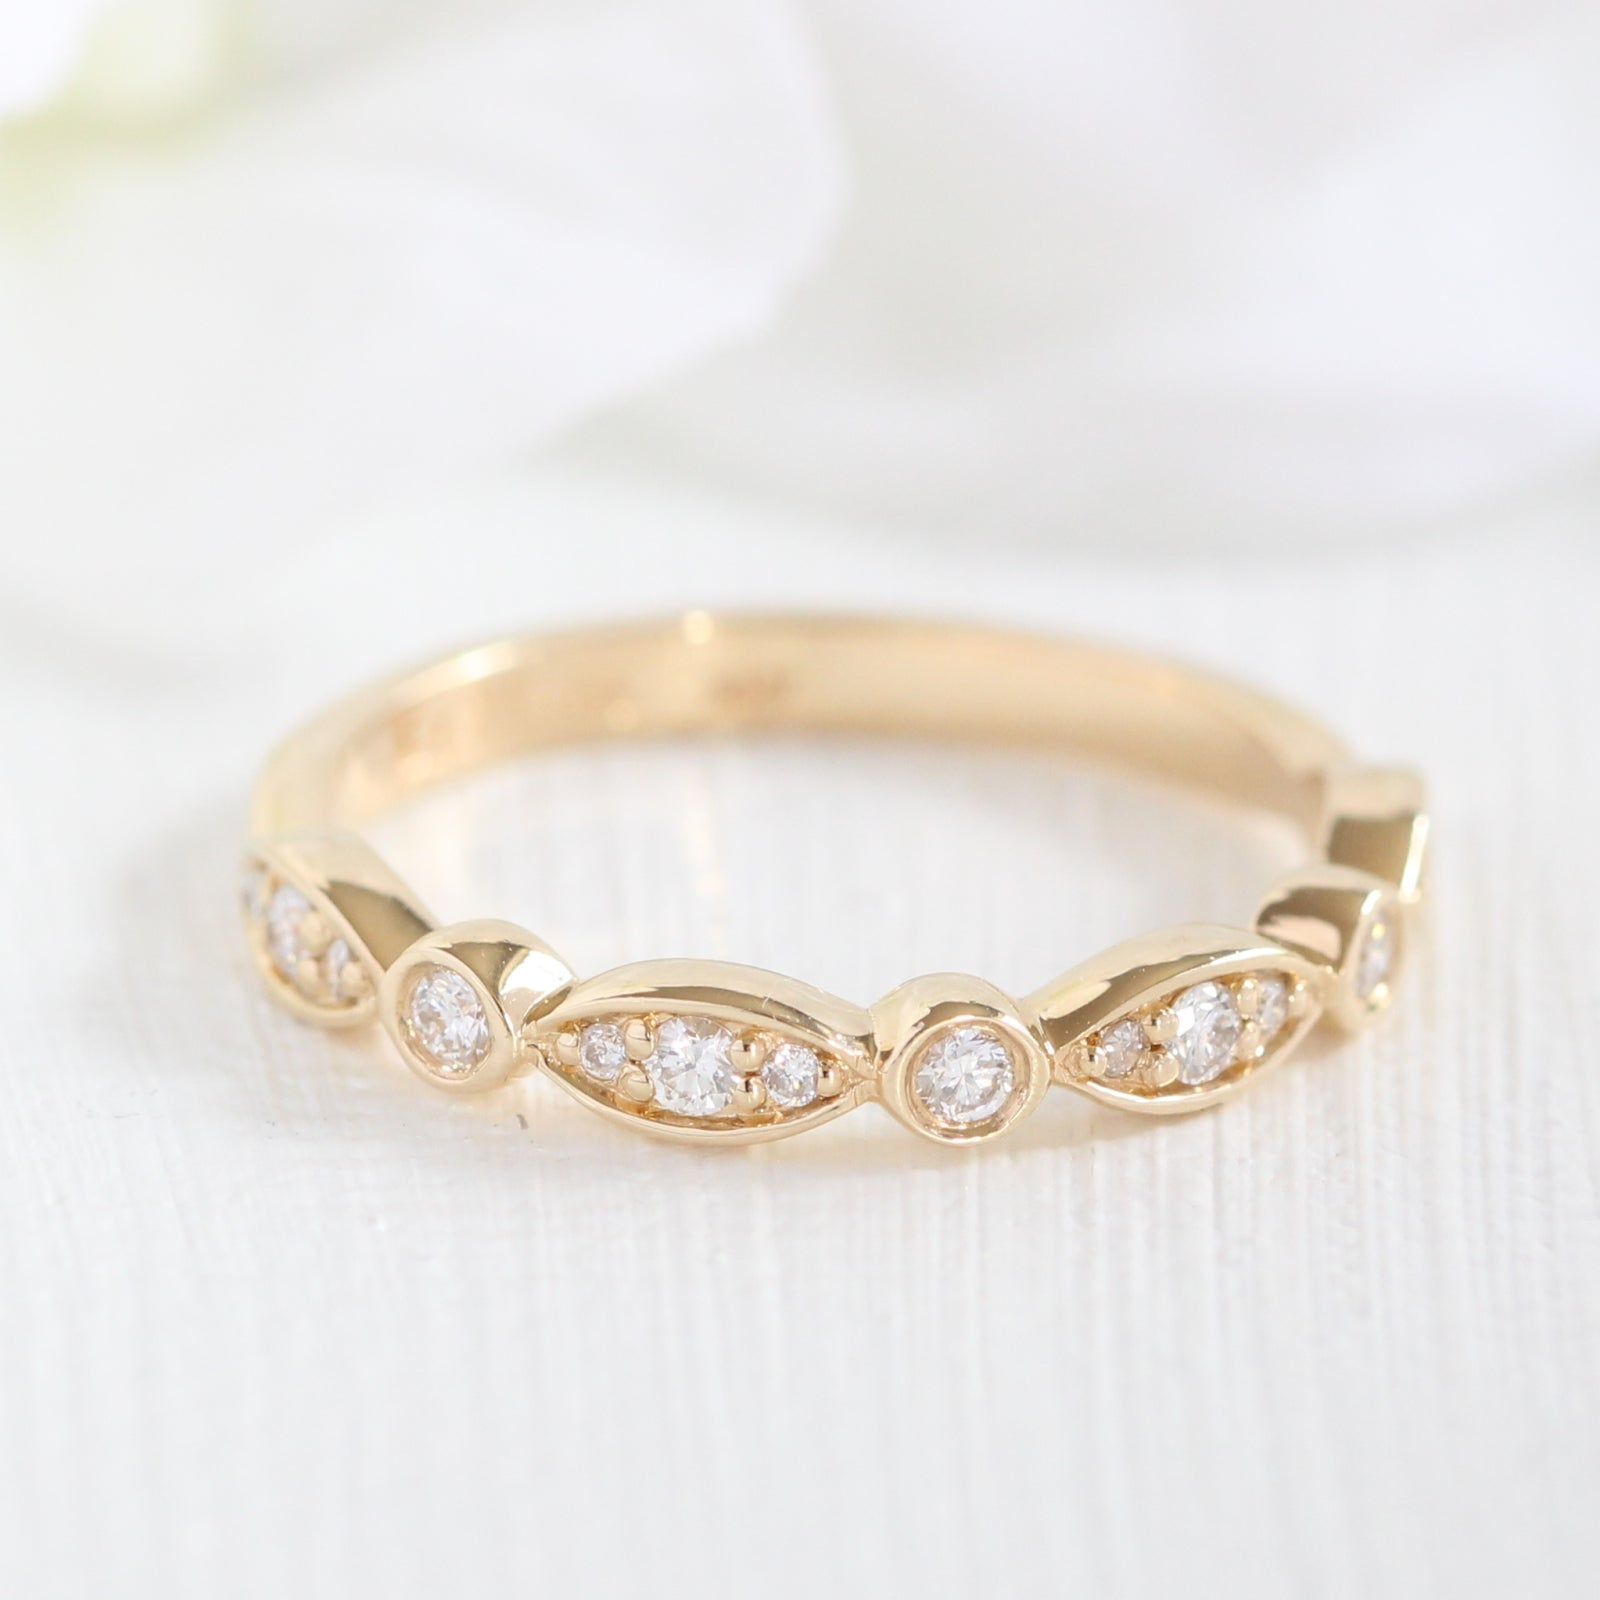 bands in design band scalloped products bezel gold white la diamond ring more by wedding